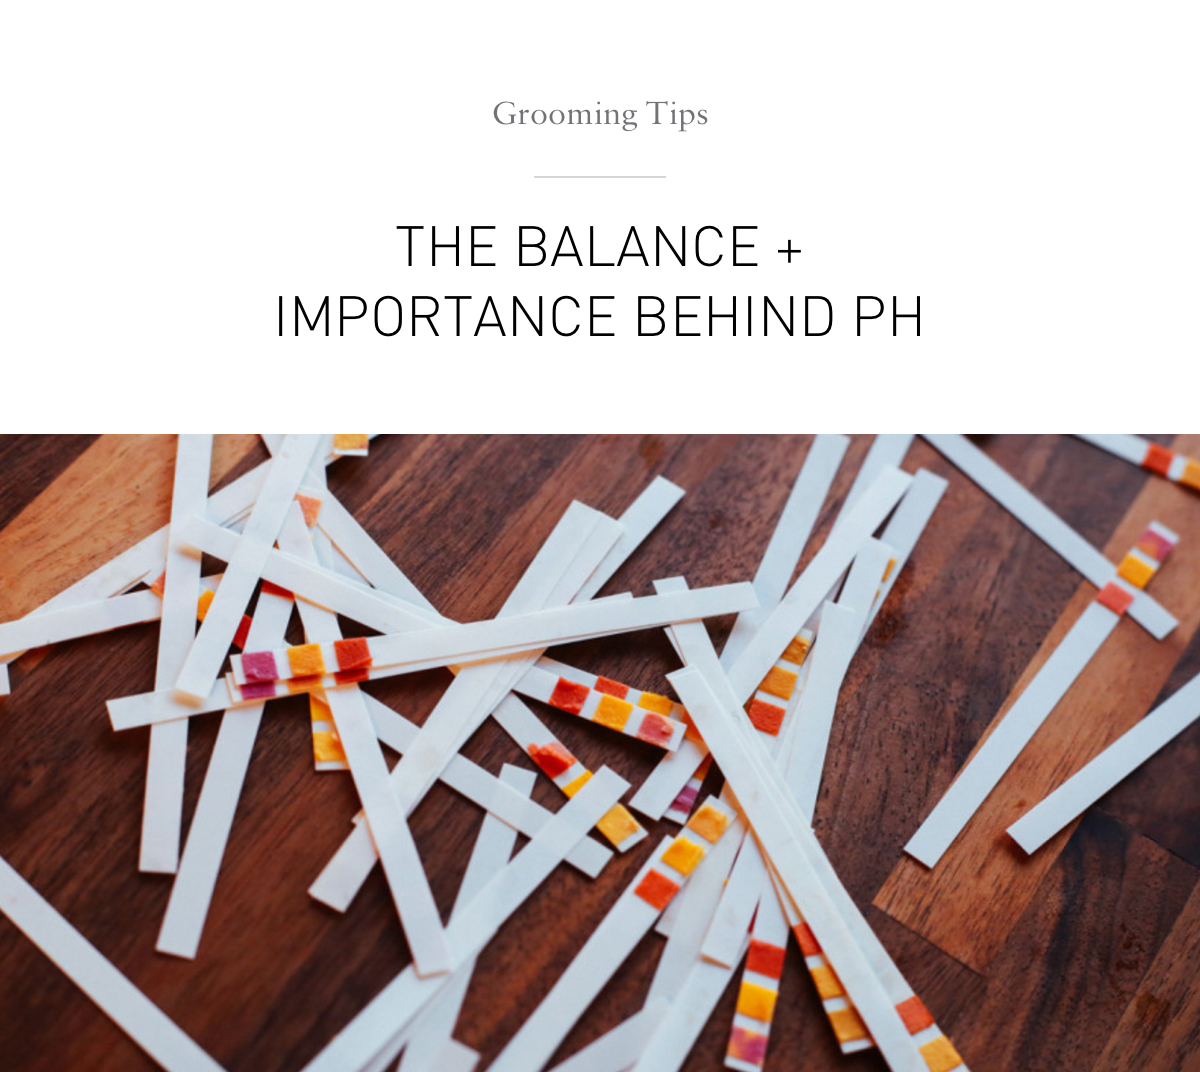 grooming tips. The balance + importance behind pH